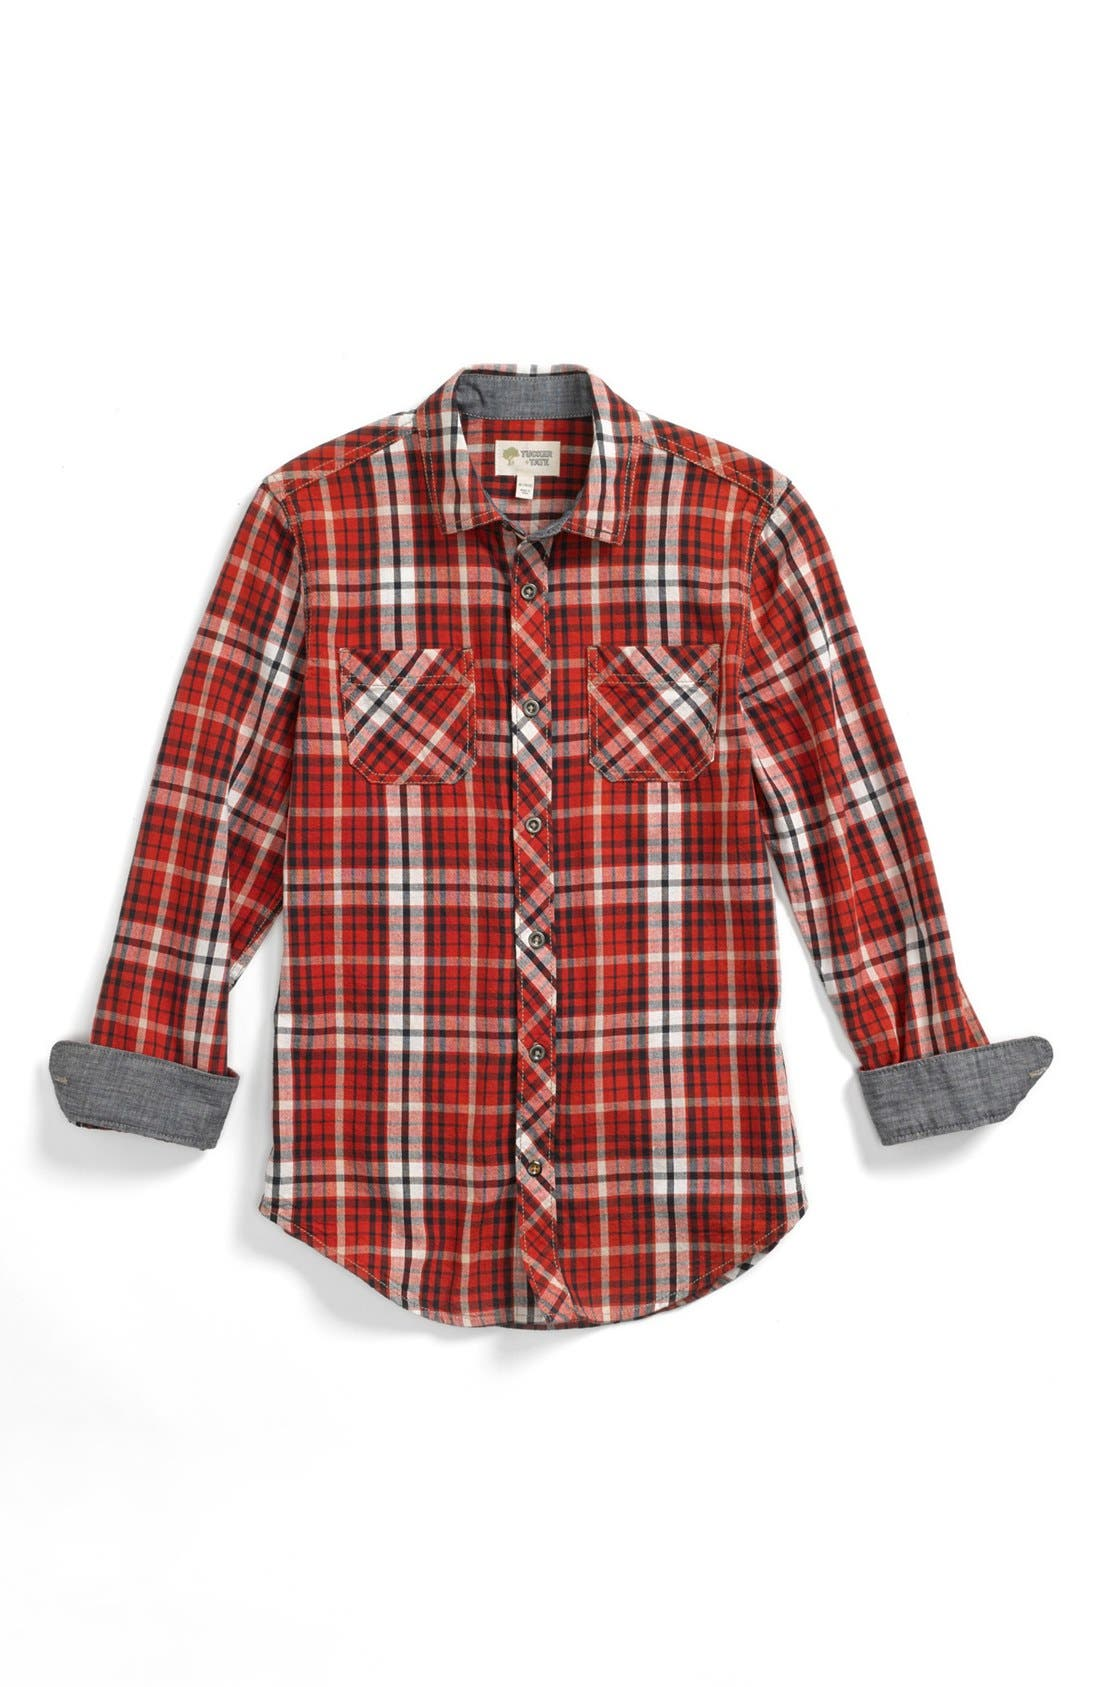 Alternate Image 1 Selected - Tucker + Tate 'Bluewater' Plaid Shirt (Little Boys)